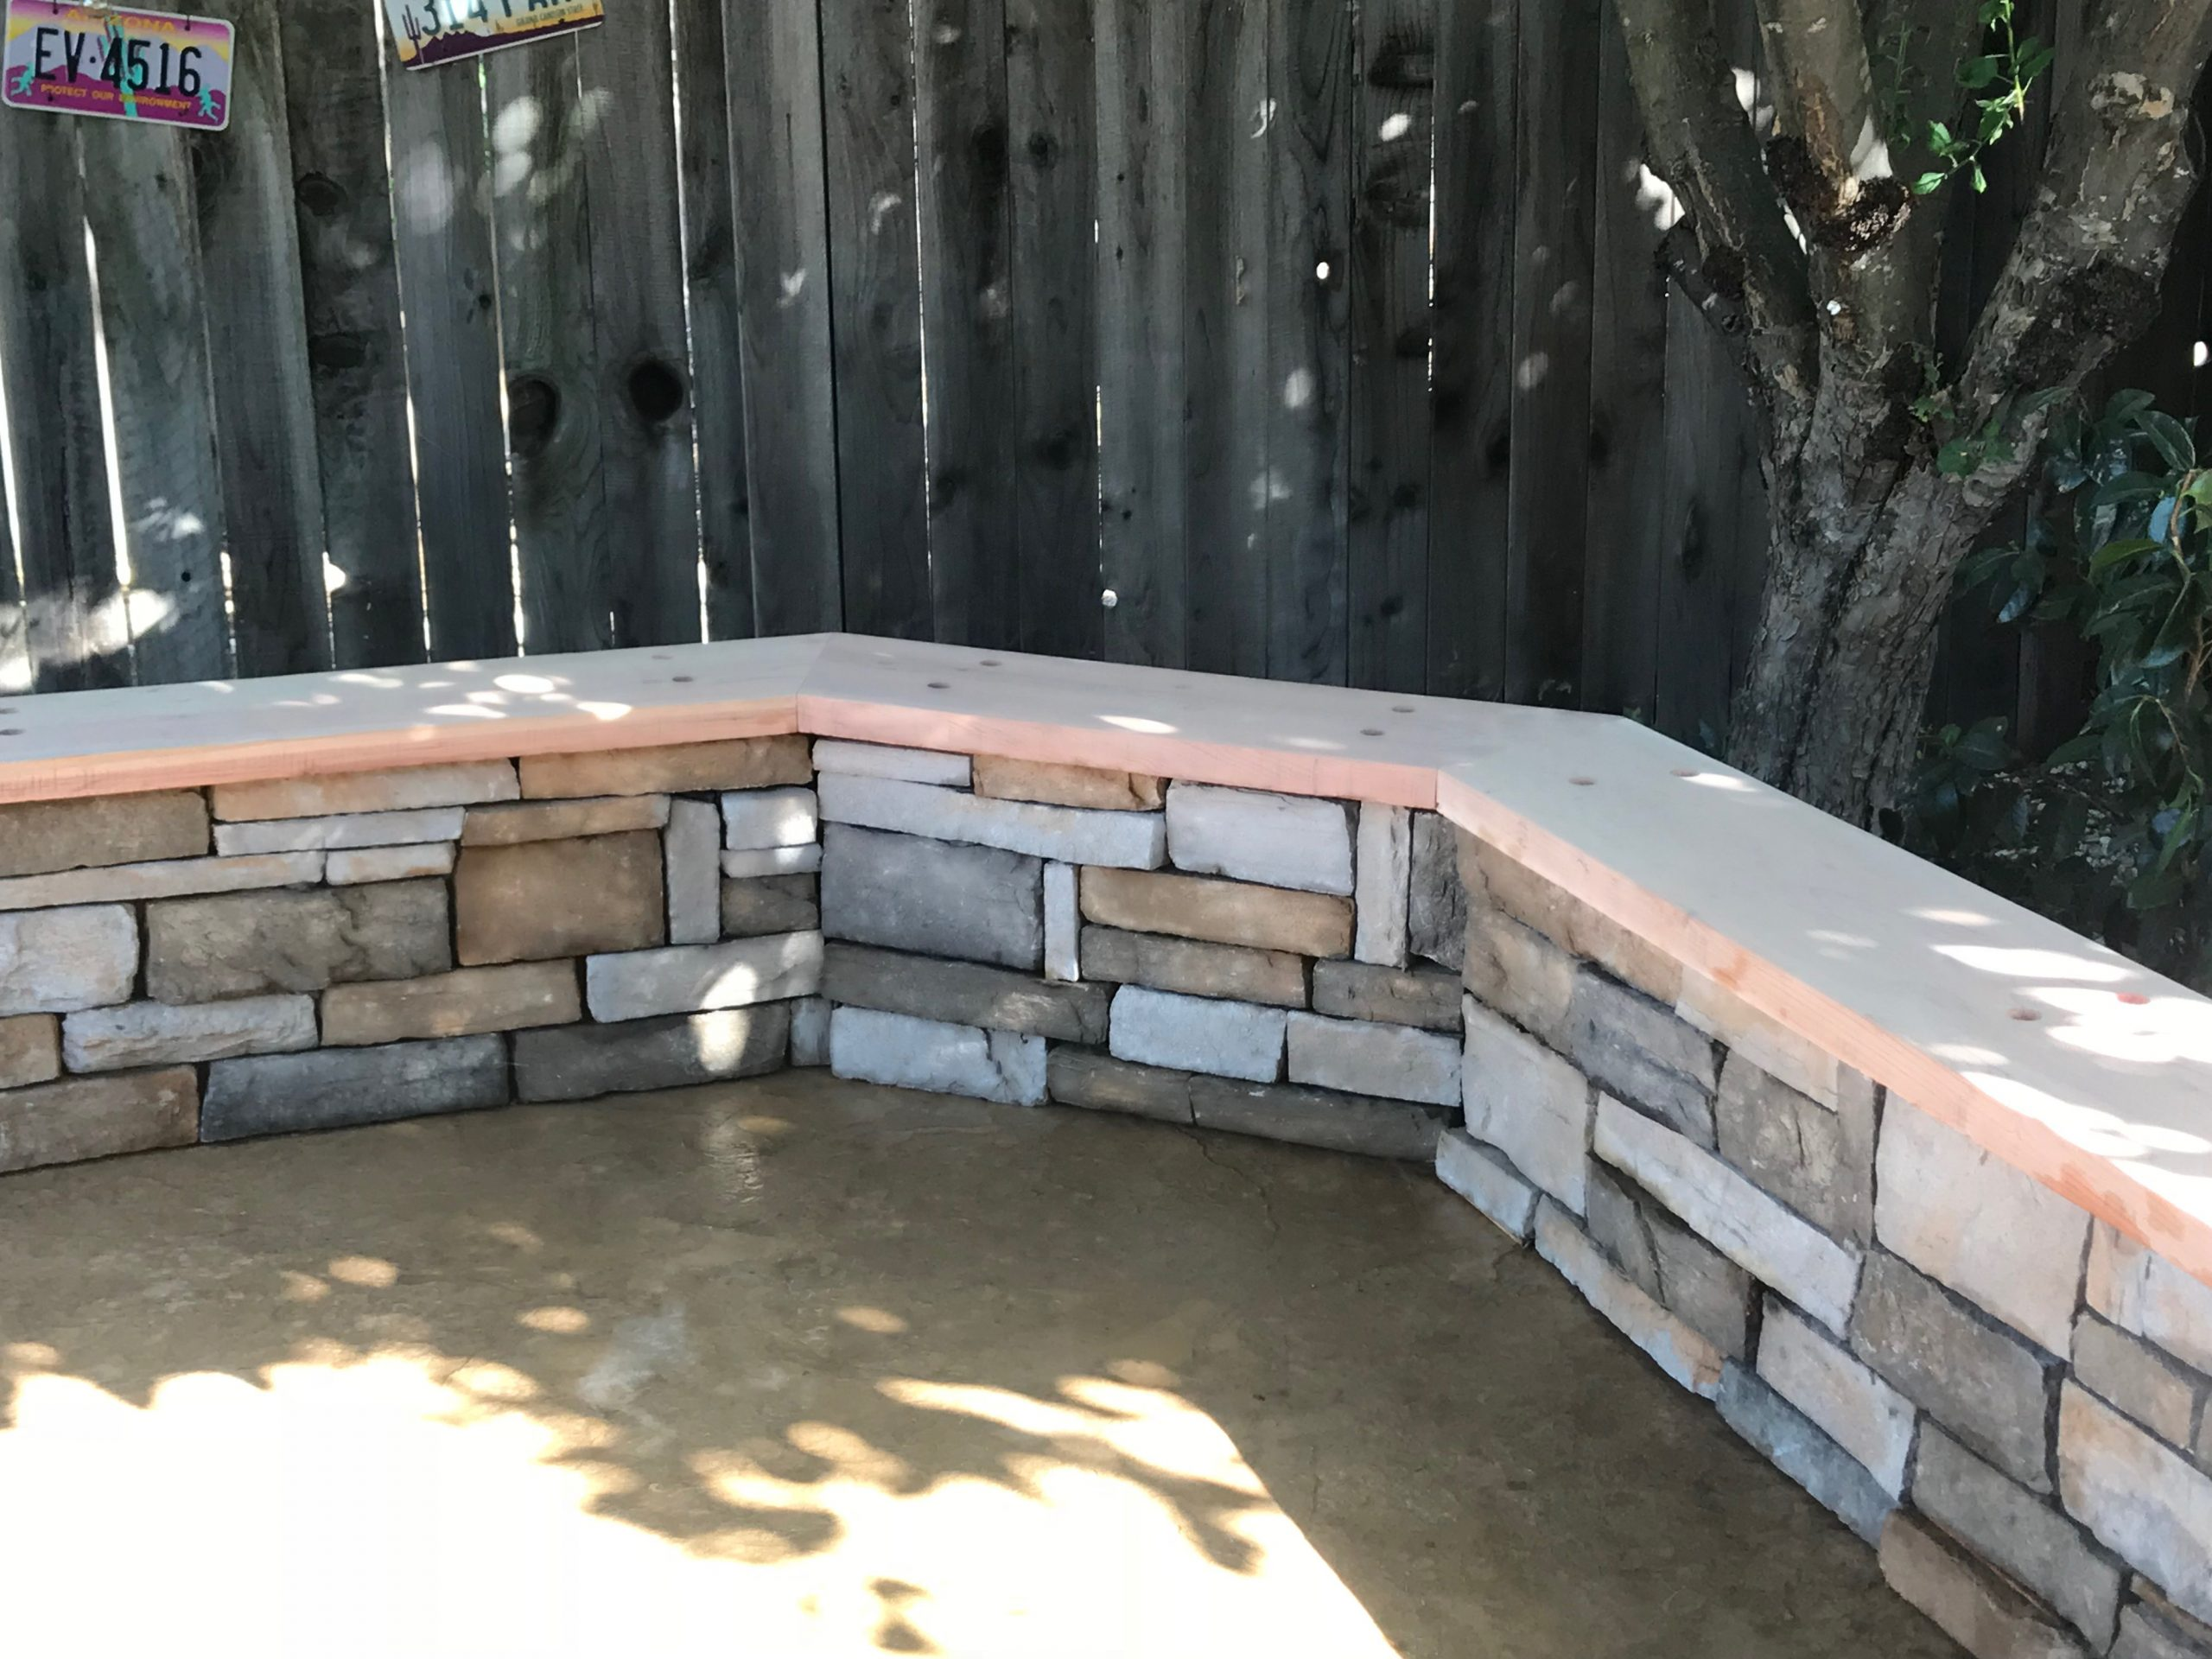 this is an image of the simi valley stone veneer